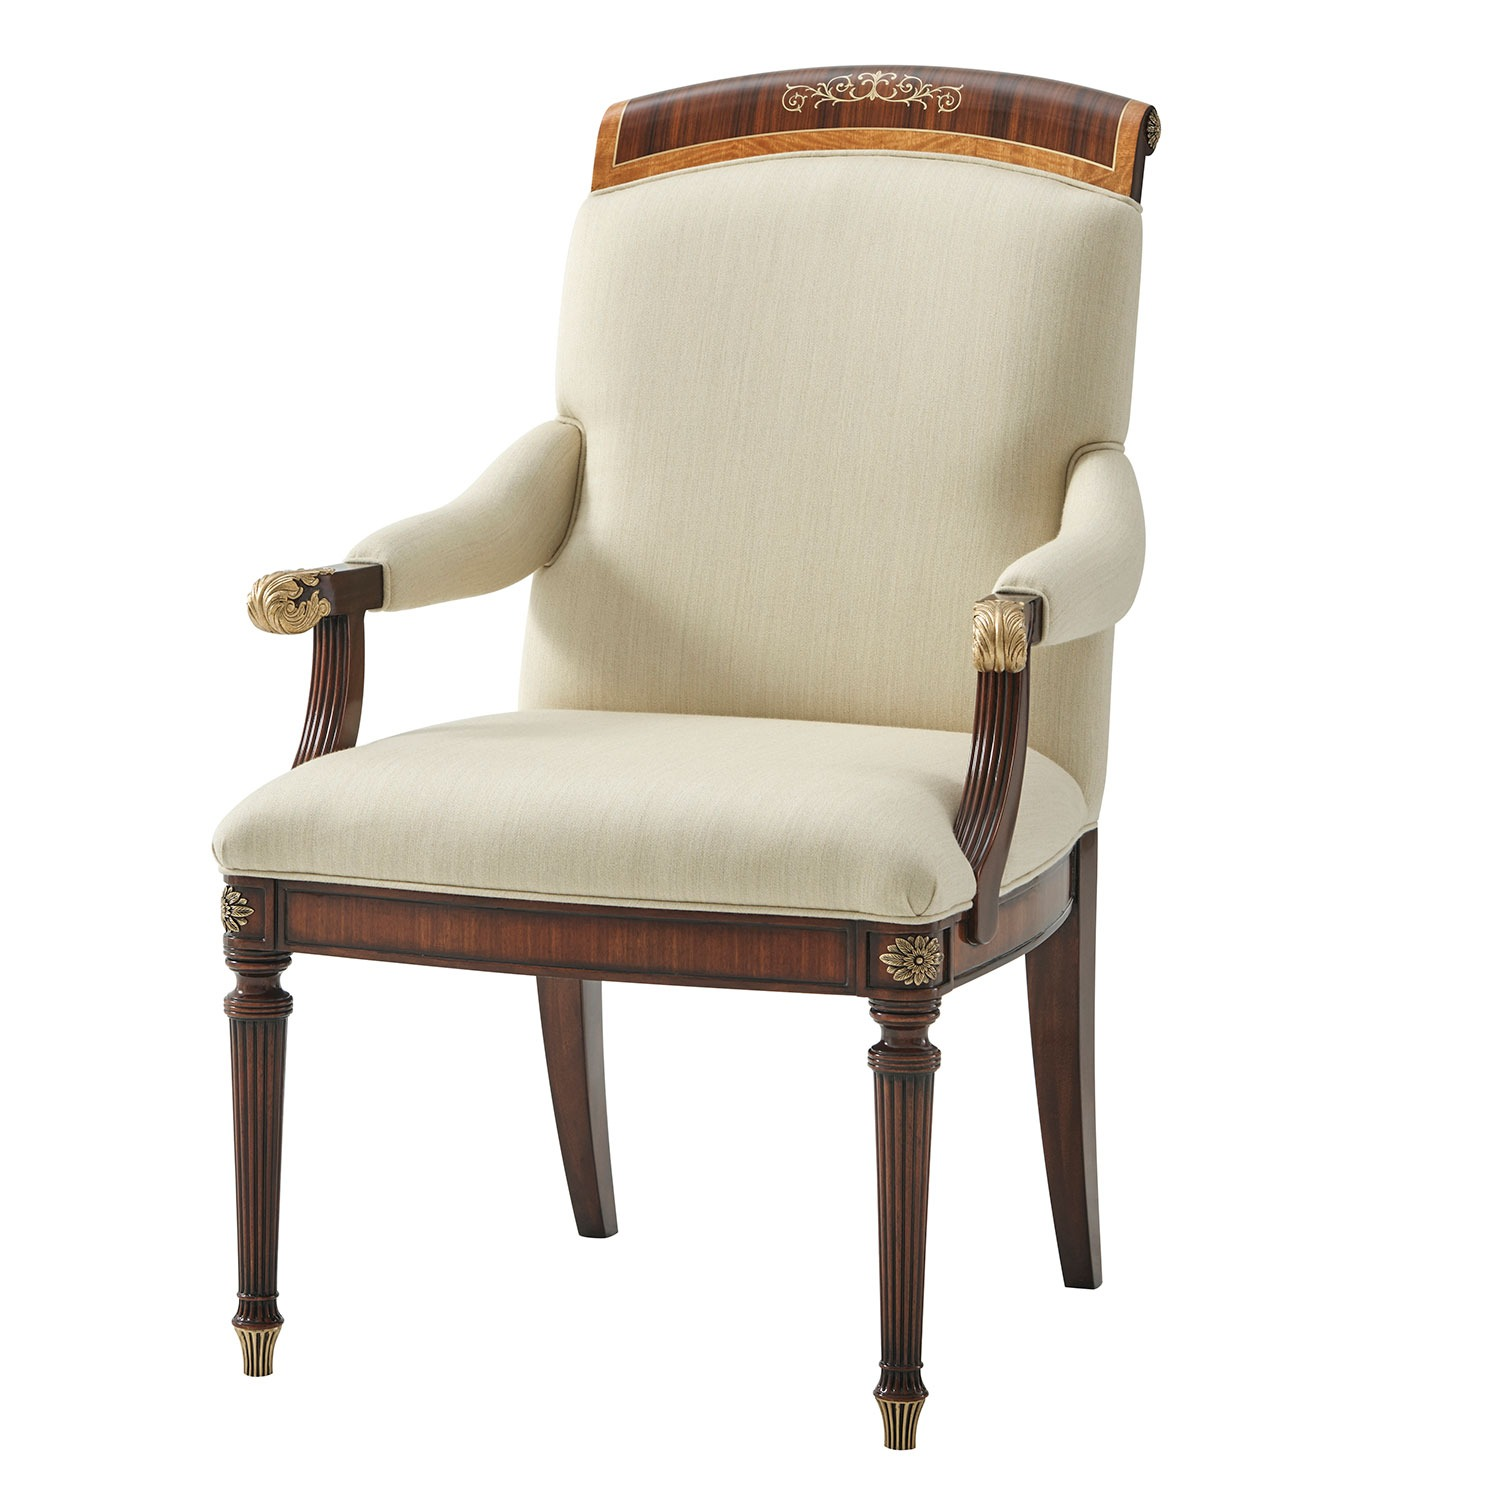 Upholstered Dining Chair with Floral Brass Inlay